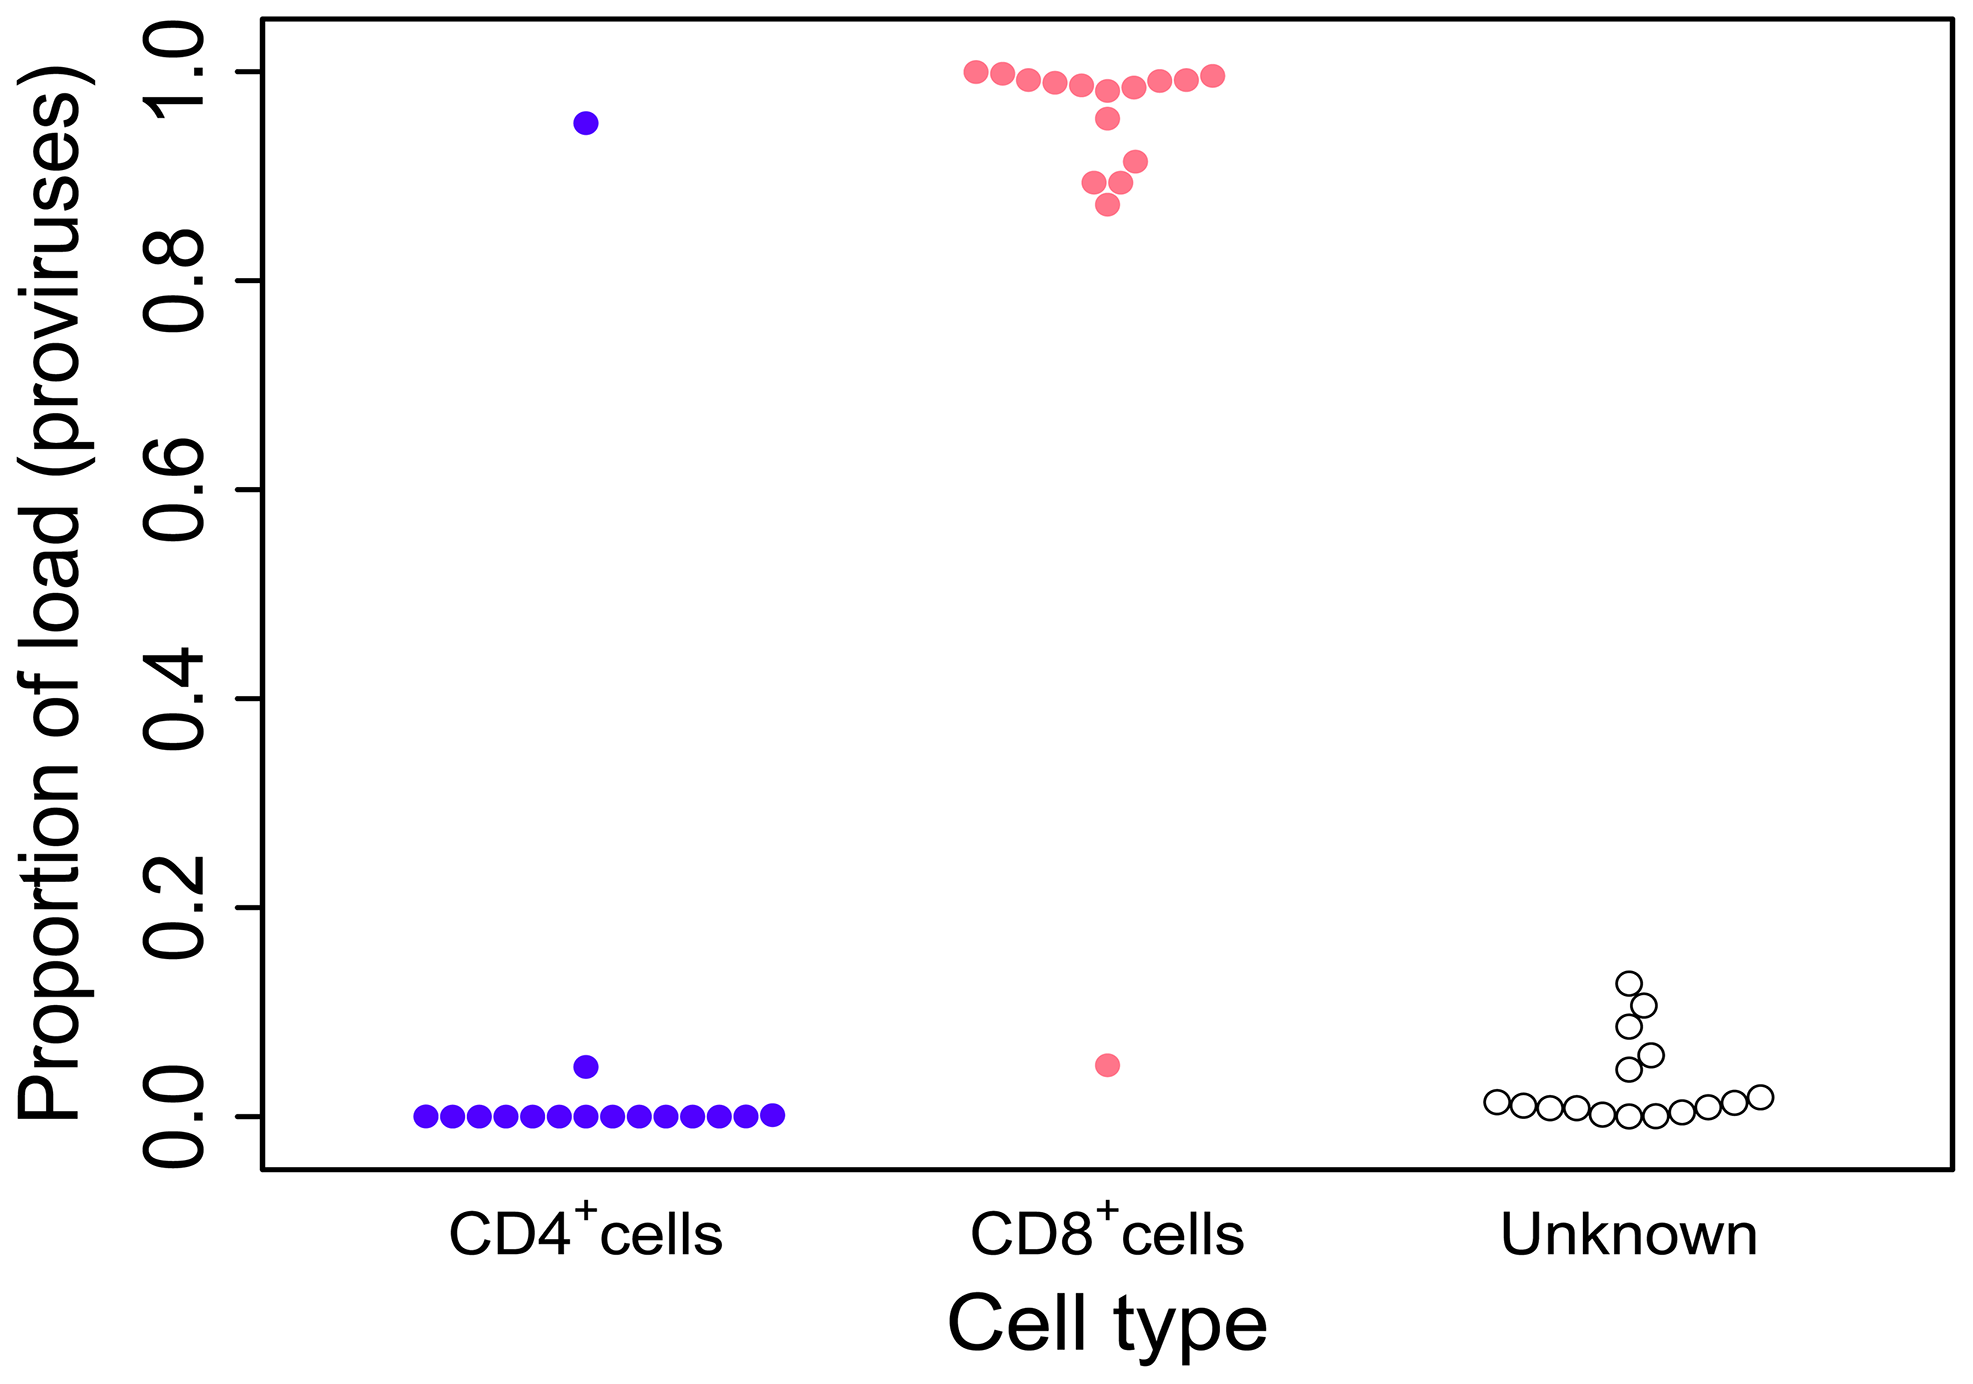 HTLV-2 infection is found almost exclusively in CD8<sup>+</sup> T-cells.